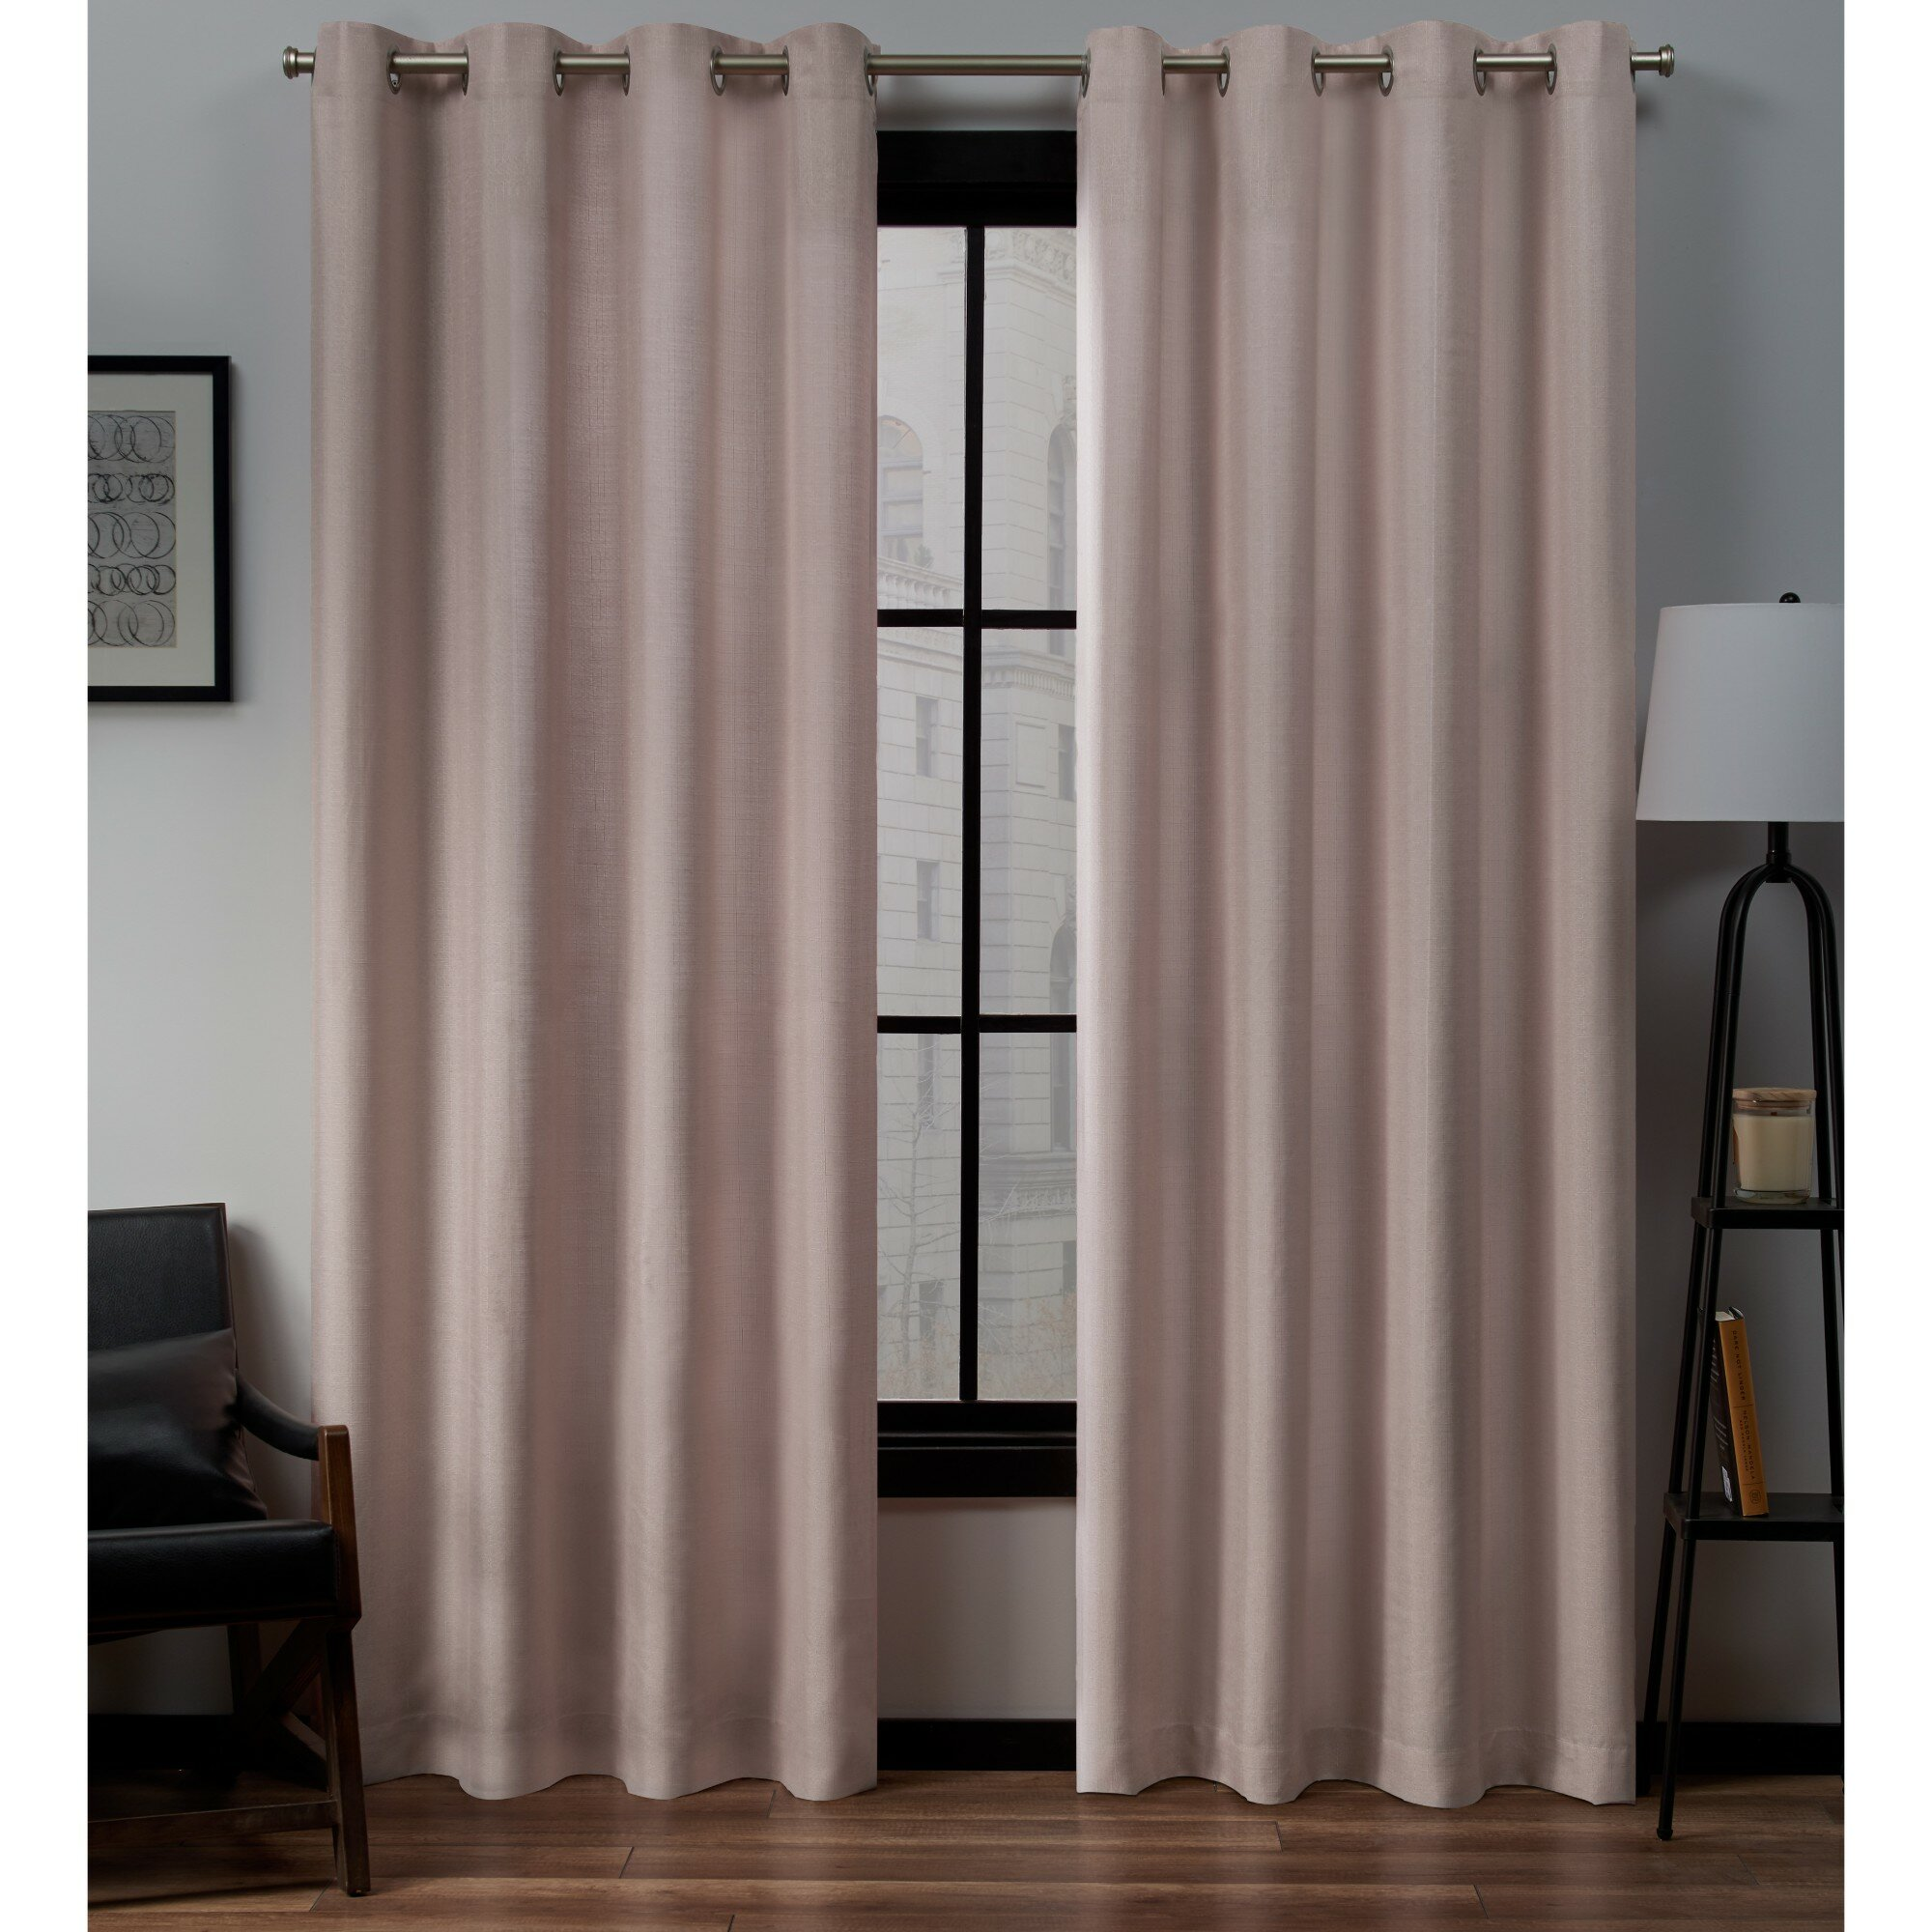 Pink Sheer Curtains Drapes You Ll Love In 2021 Wayfair